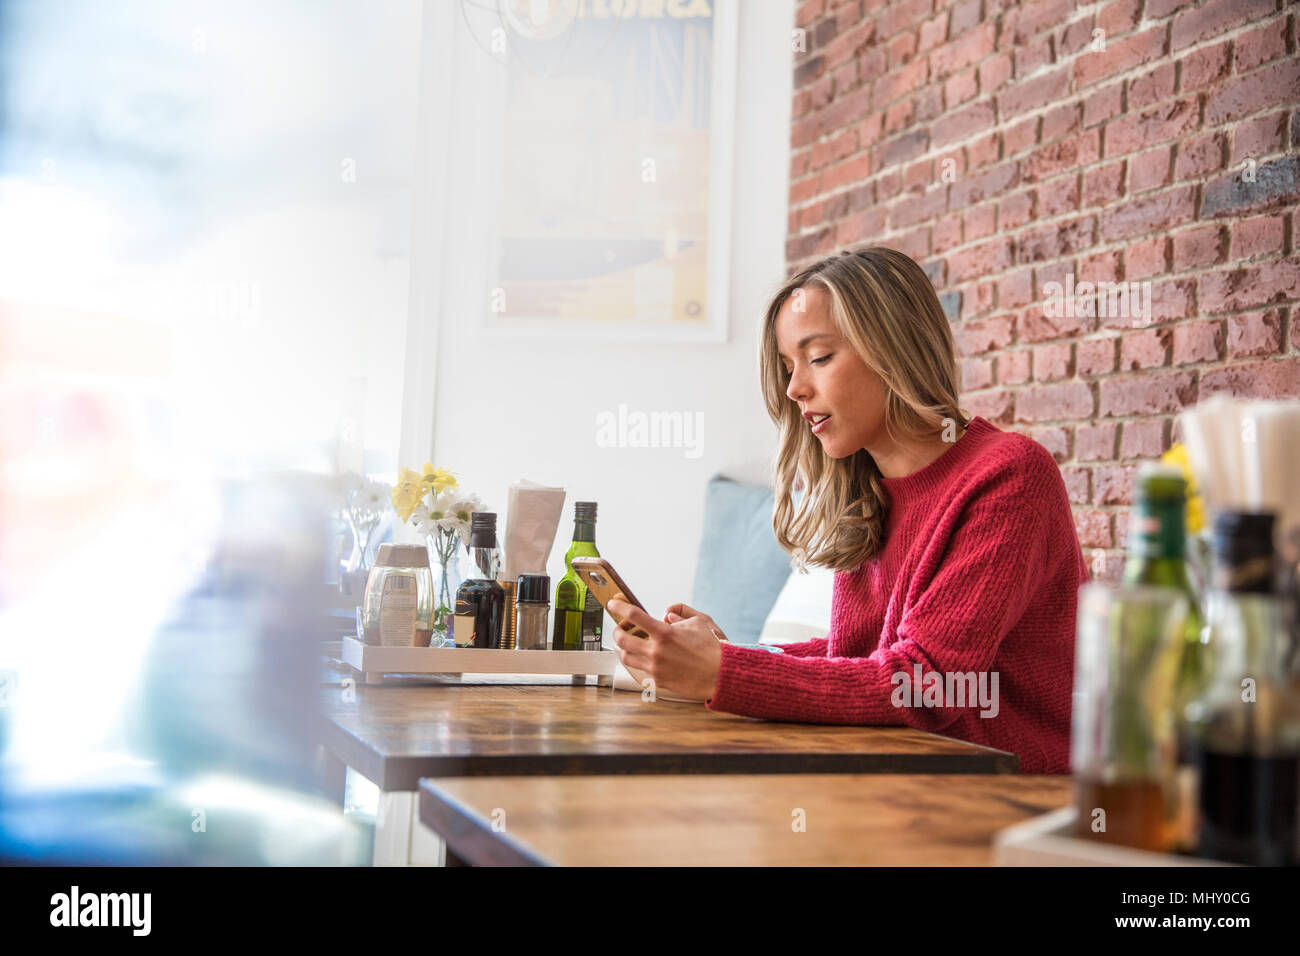 Woman sitting in cafe, looking at smartphone Photo Stock